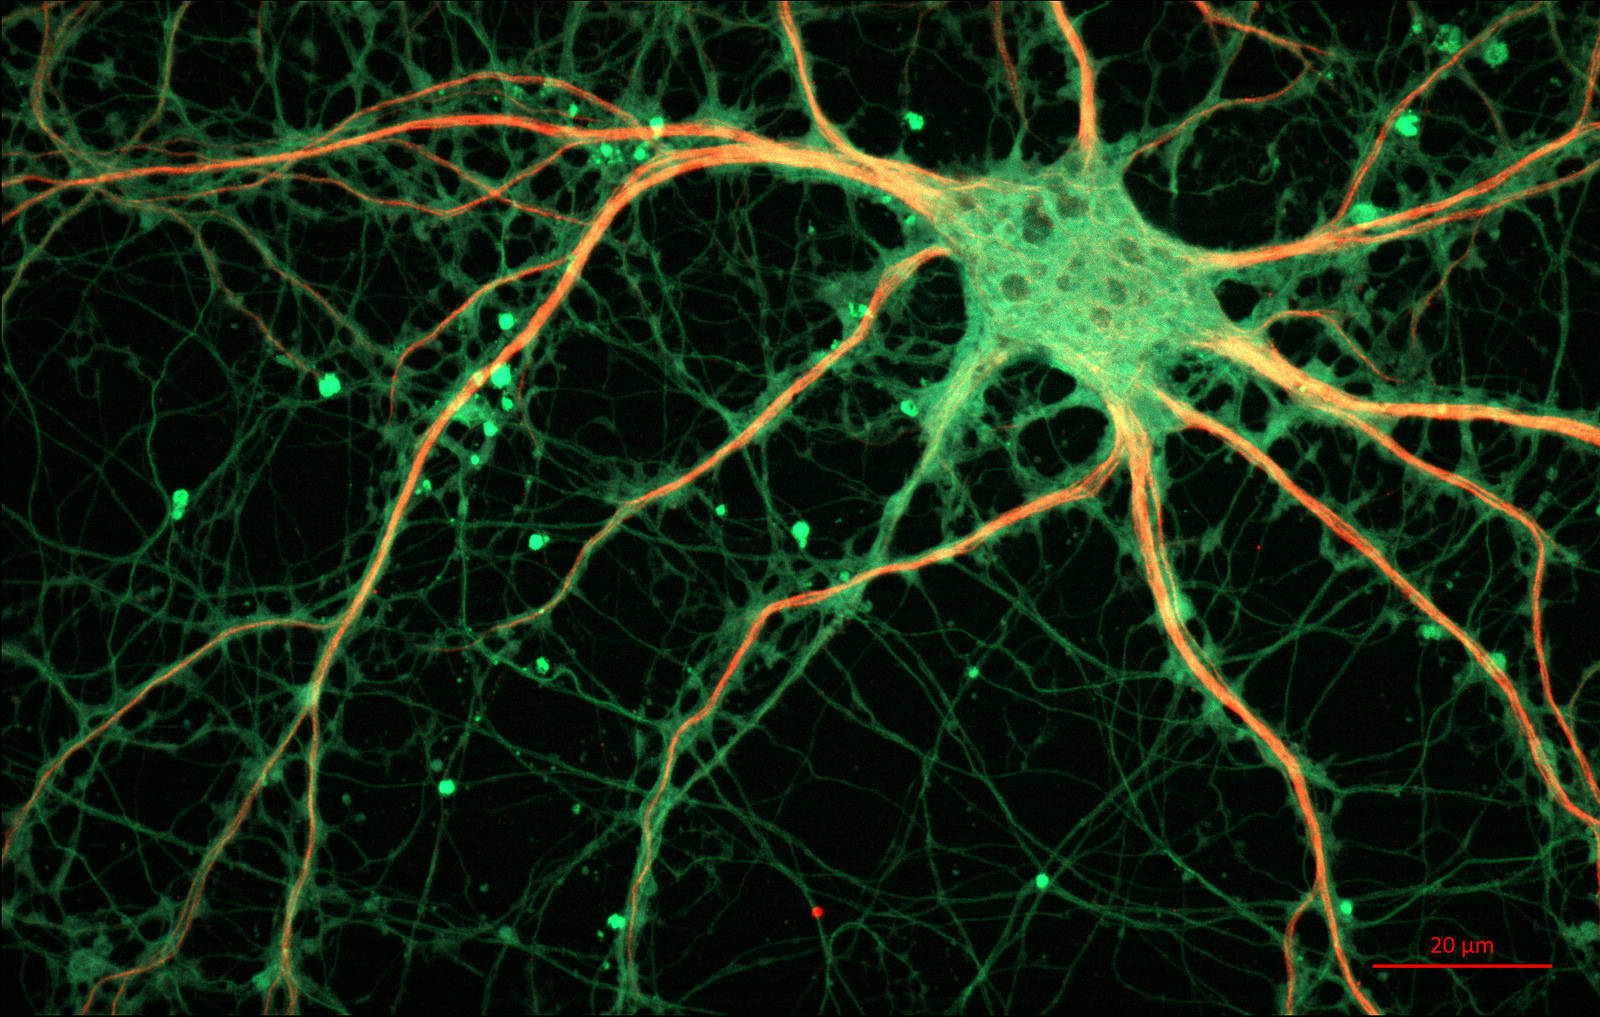 Fluorescent Microscopy image of a neuronal cell. Credit: ZEISS Microscopy